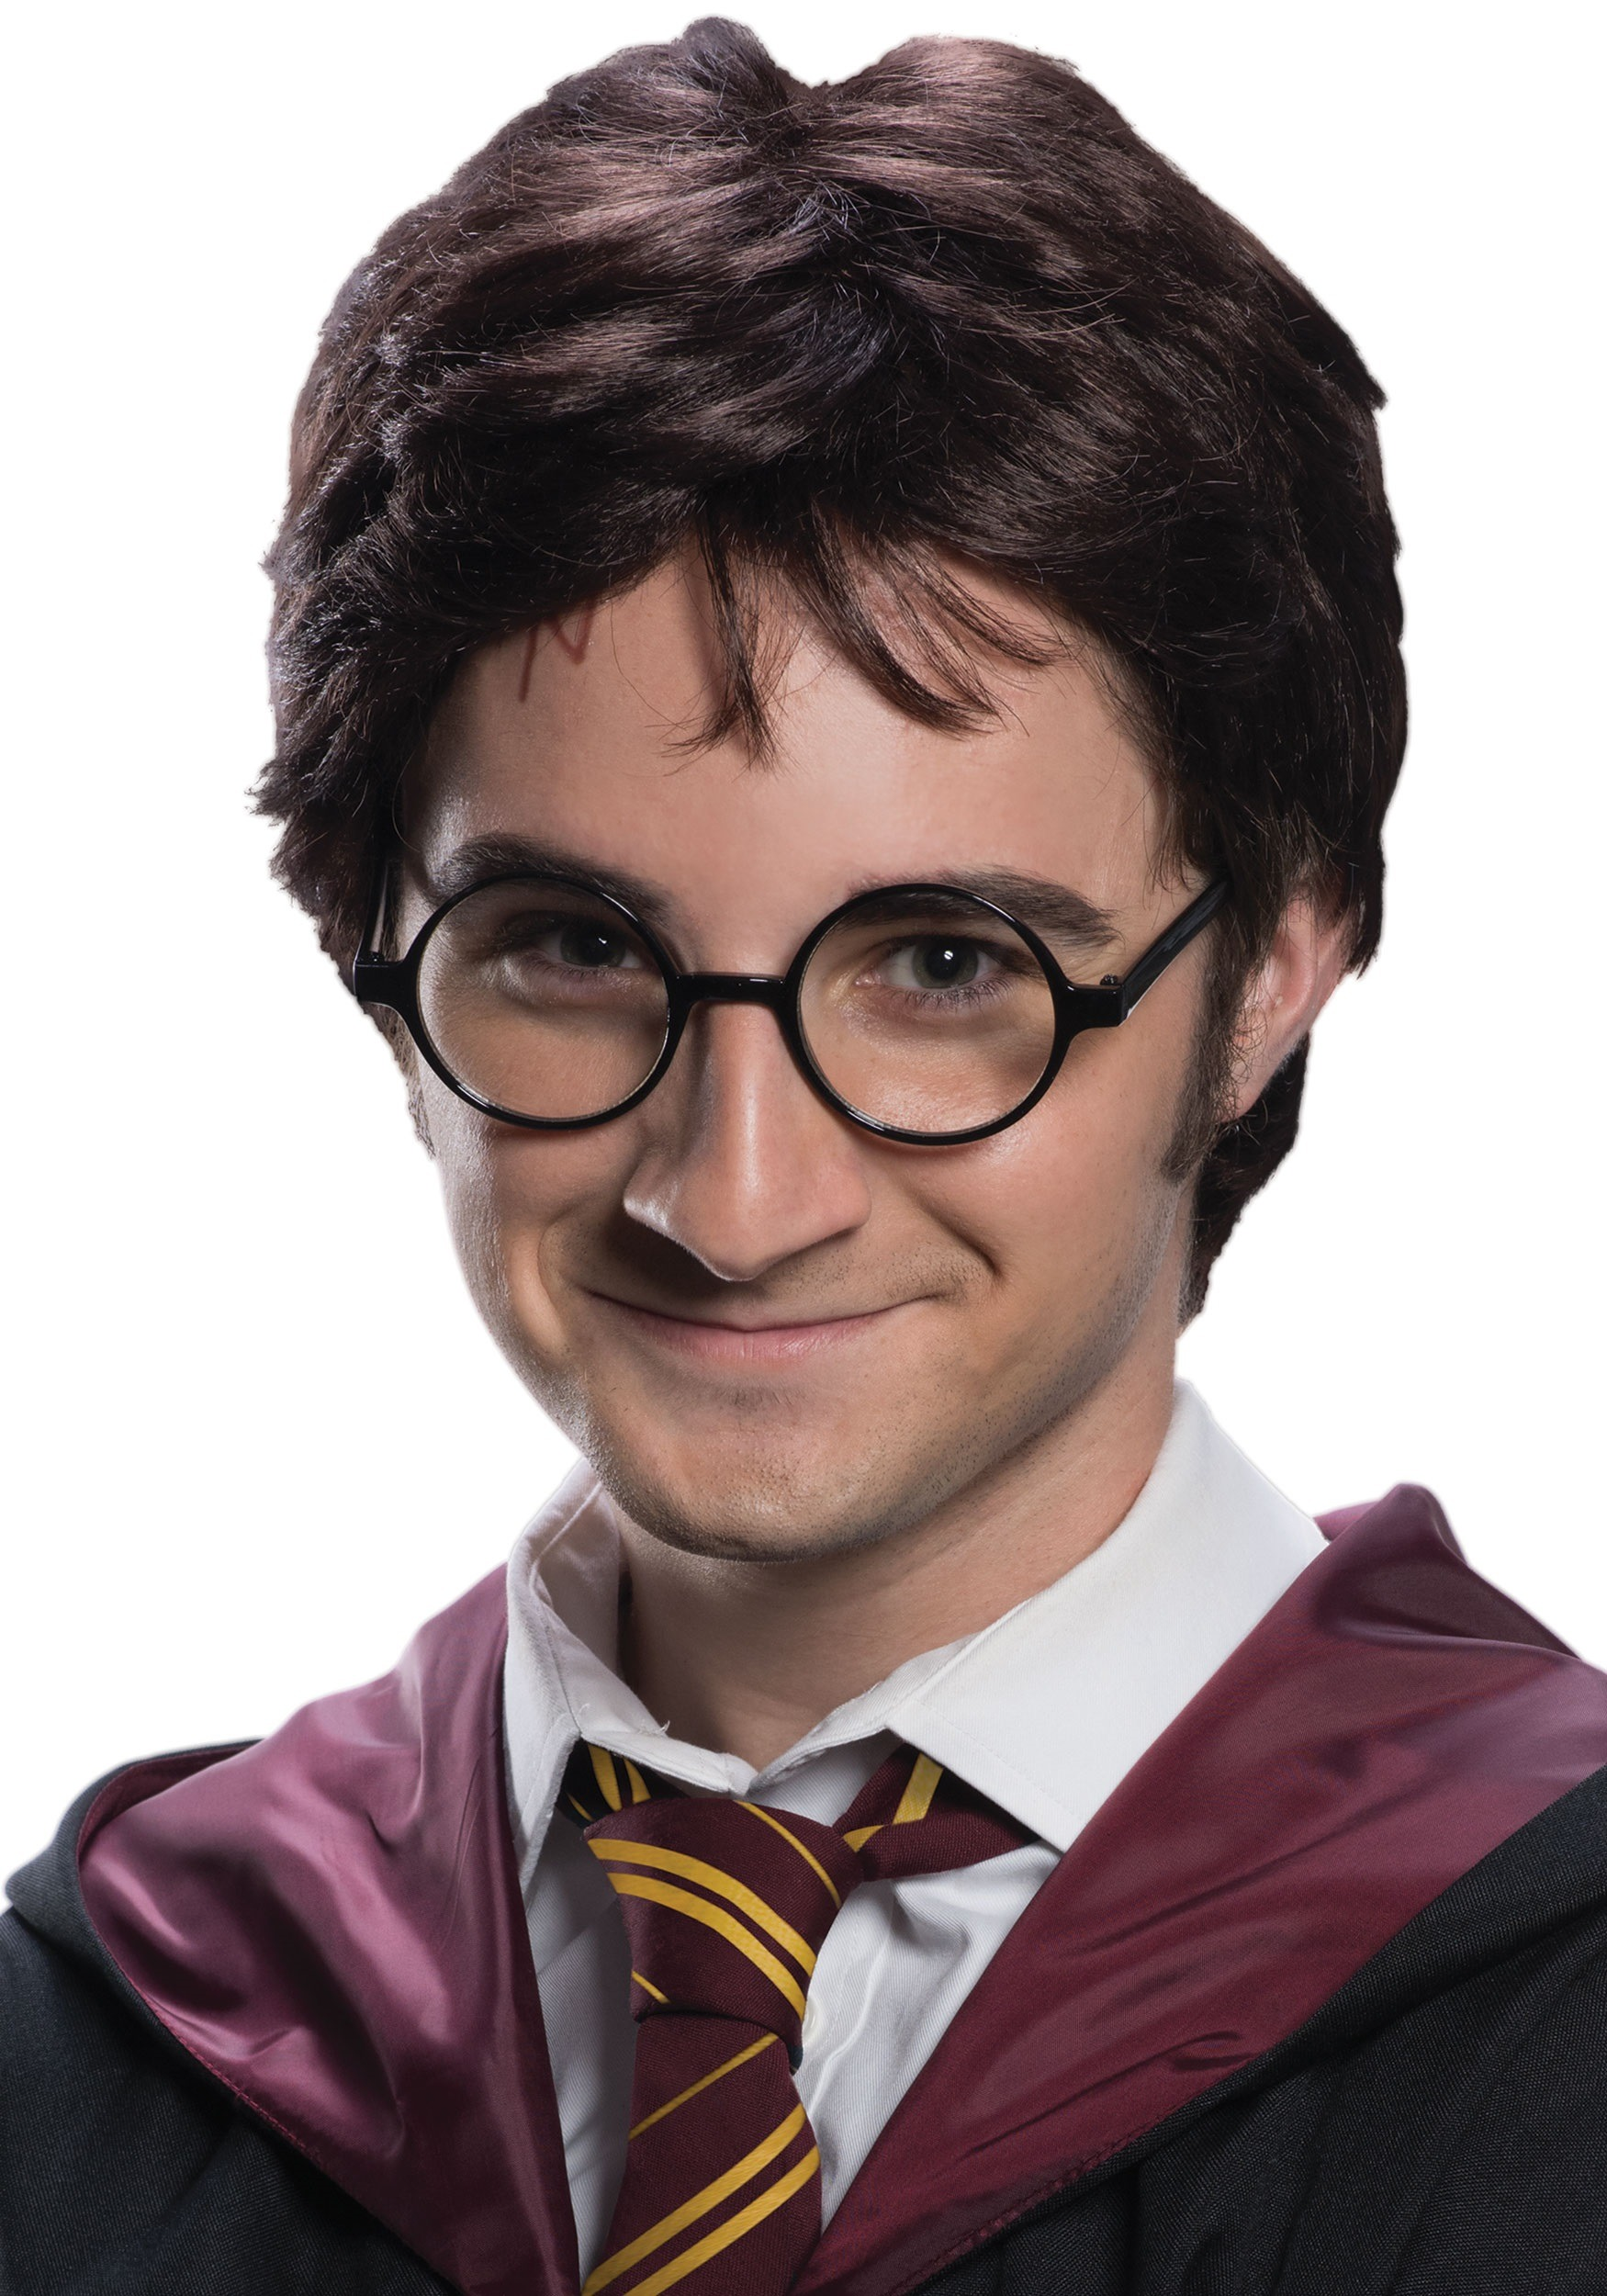 harry potter themed halloween costume